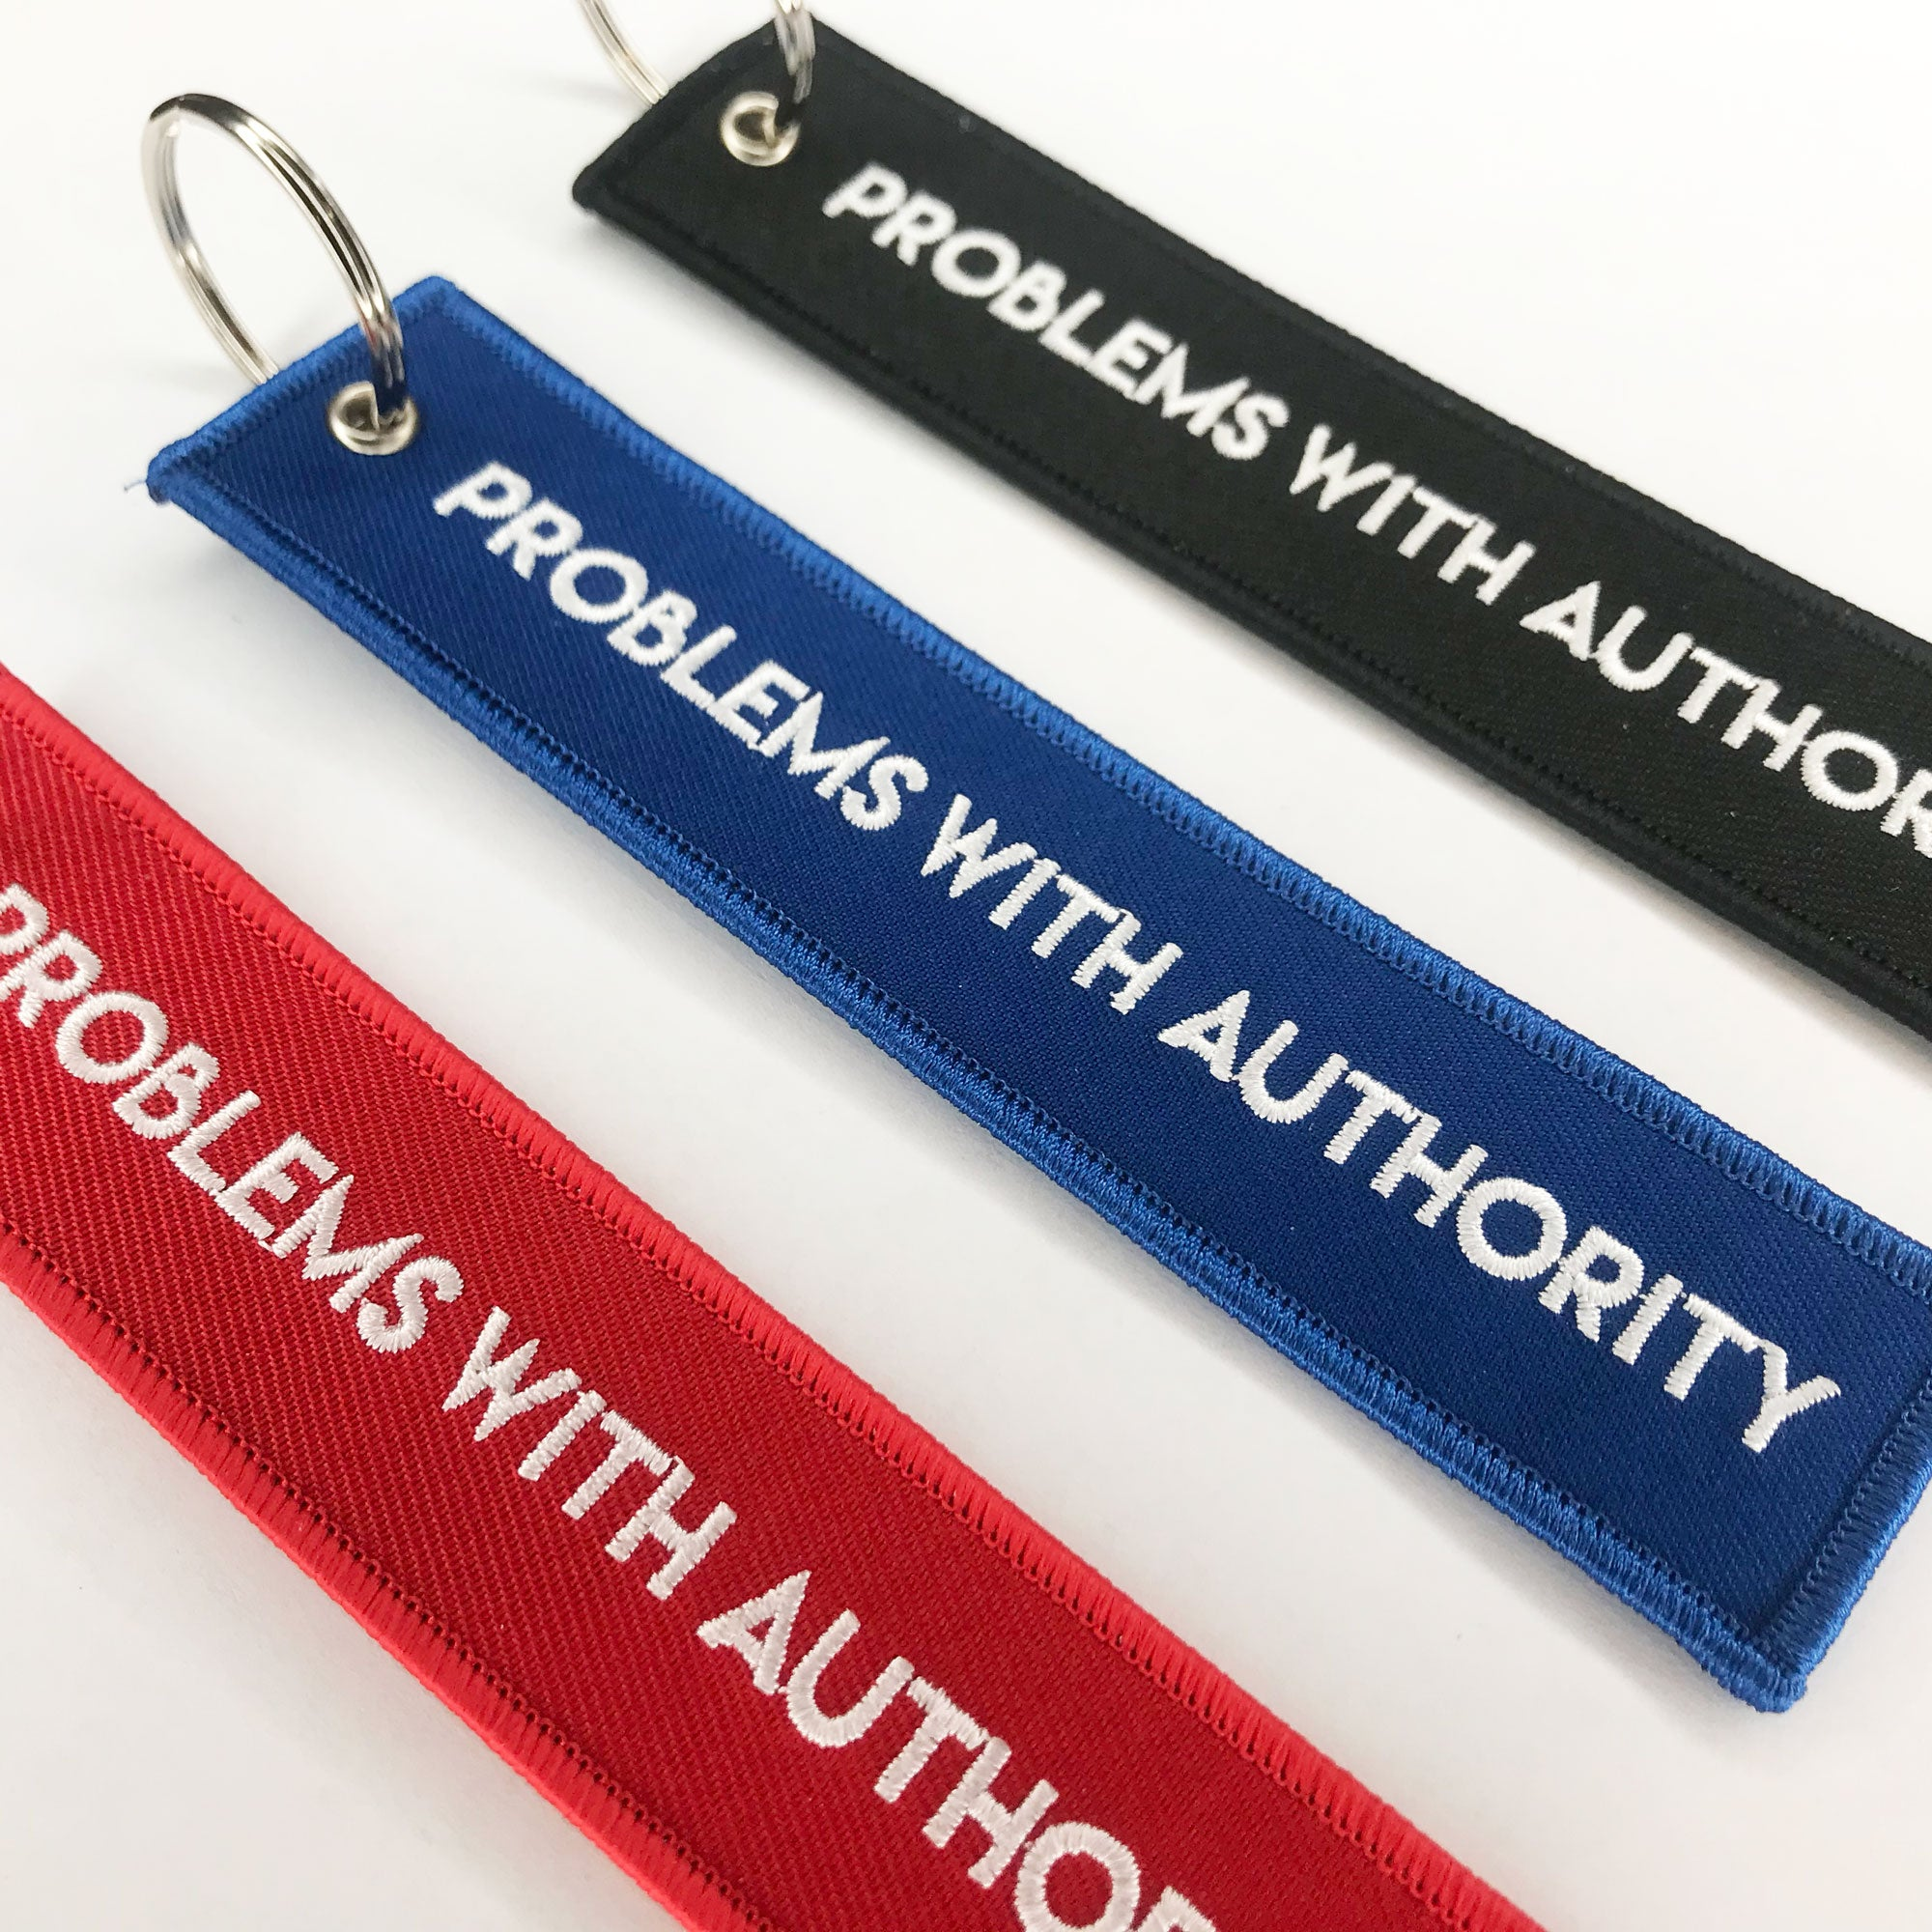 Problems With Authority Key Chain